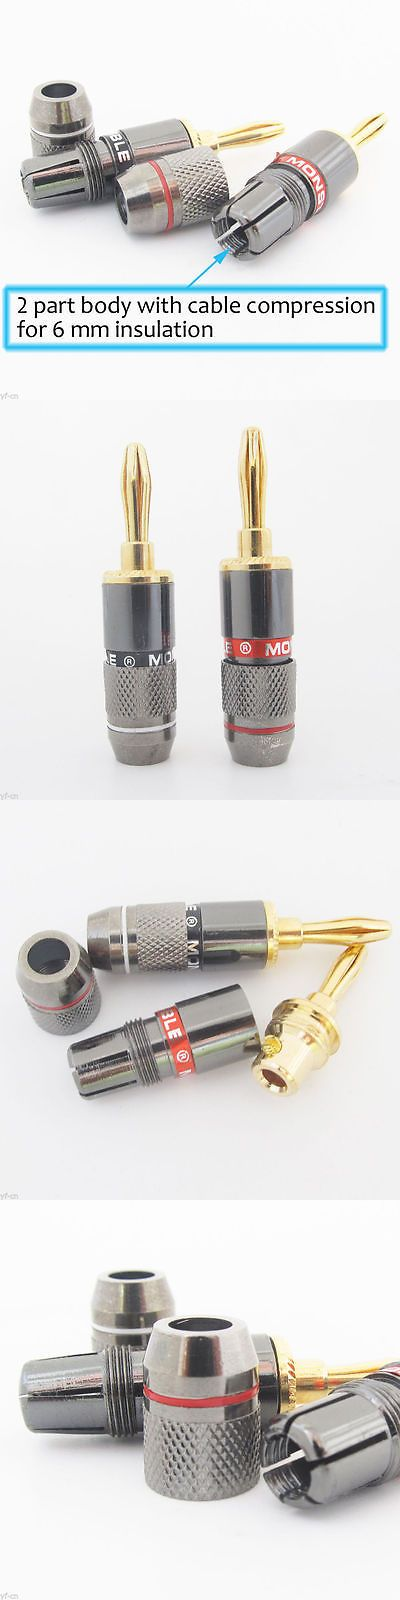 Audio Cable Plugs and Jacks: 10Pairs Monster Gold Plated Speaker Cable Wire 4Mm Banana Plug Audio Connector -> BUY IT NOW ONLY: $34.09 on eBay!